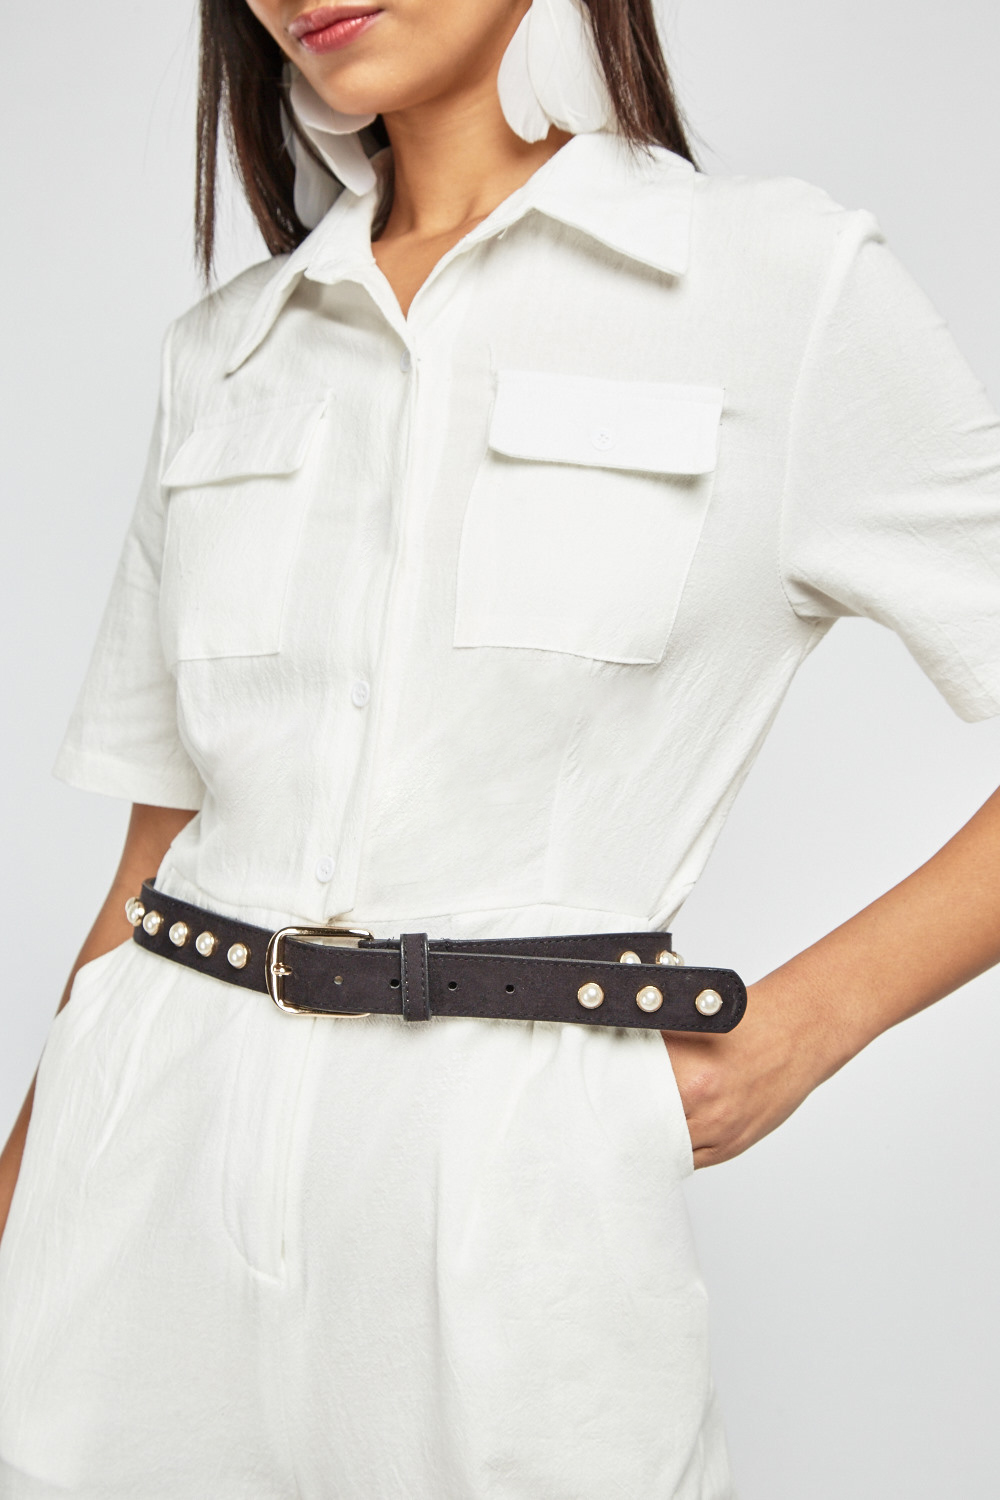 7868b6f35692 Textured White Utility Jumpsuit. 1 .